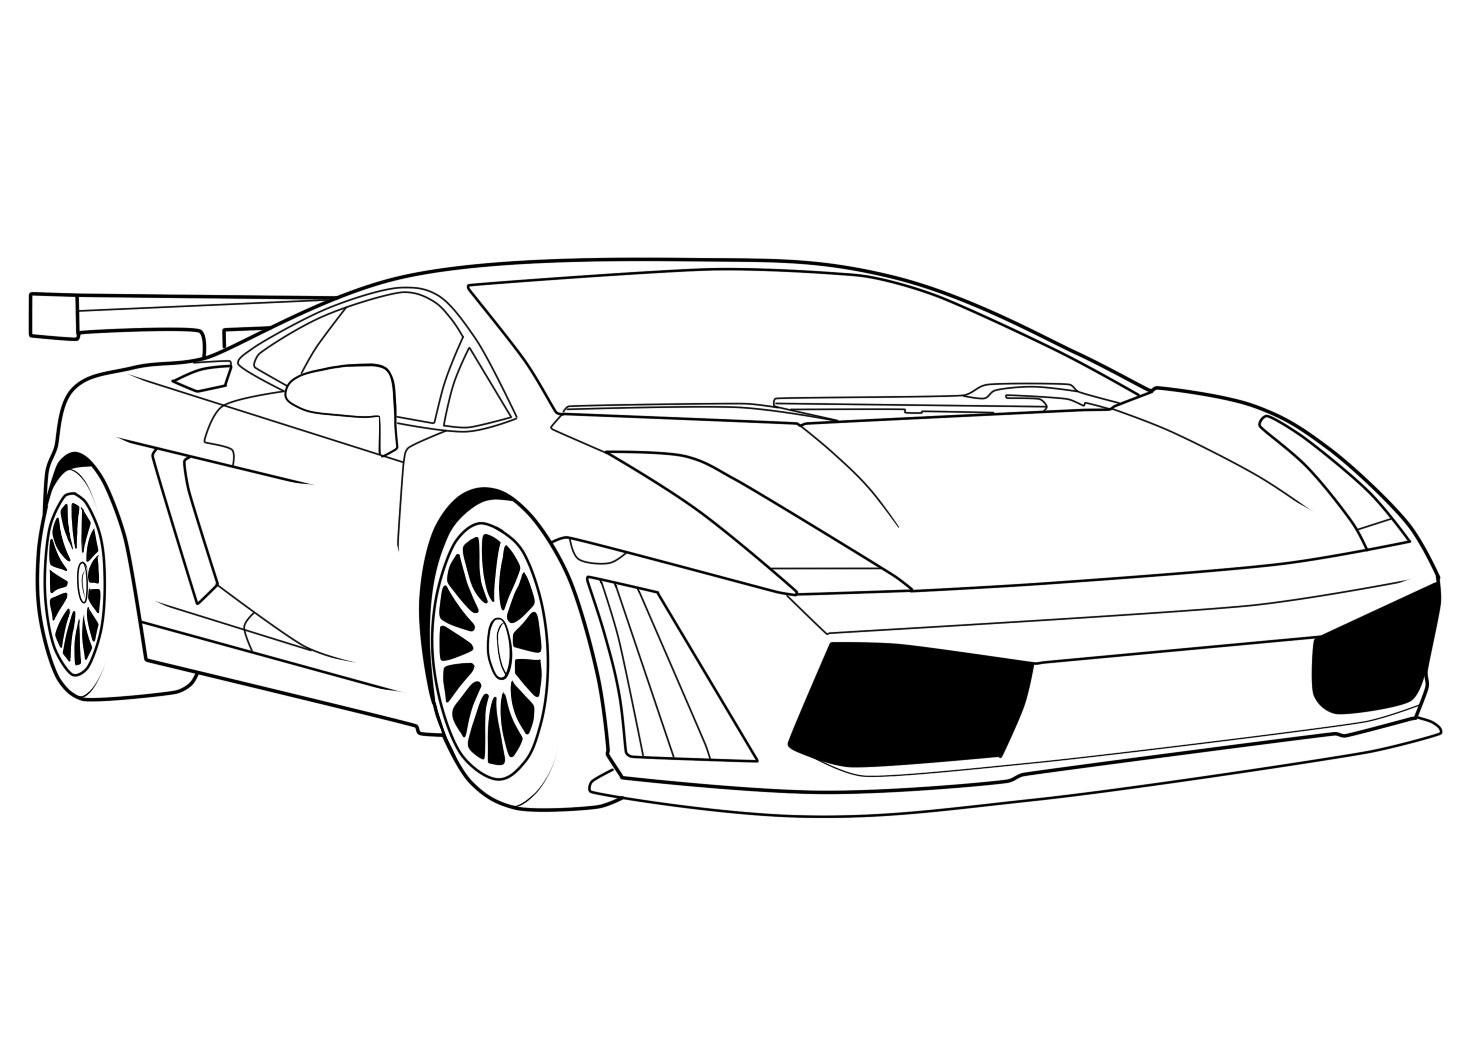 Car Coloring Pages Lamborghini Car Coloring Pages Ideas For Kid And Teenager Cars Coloring Pages Car Drawings Lamborghini Cars